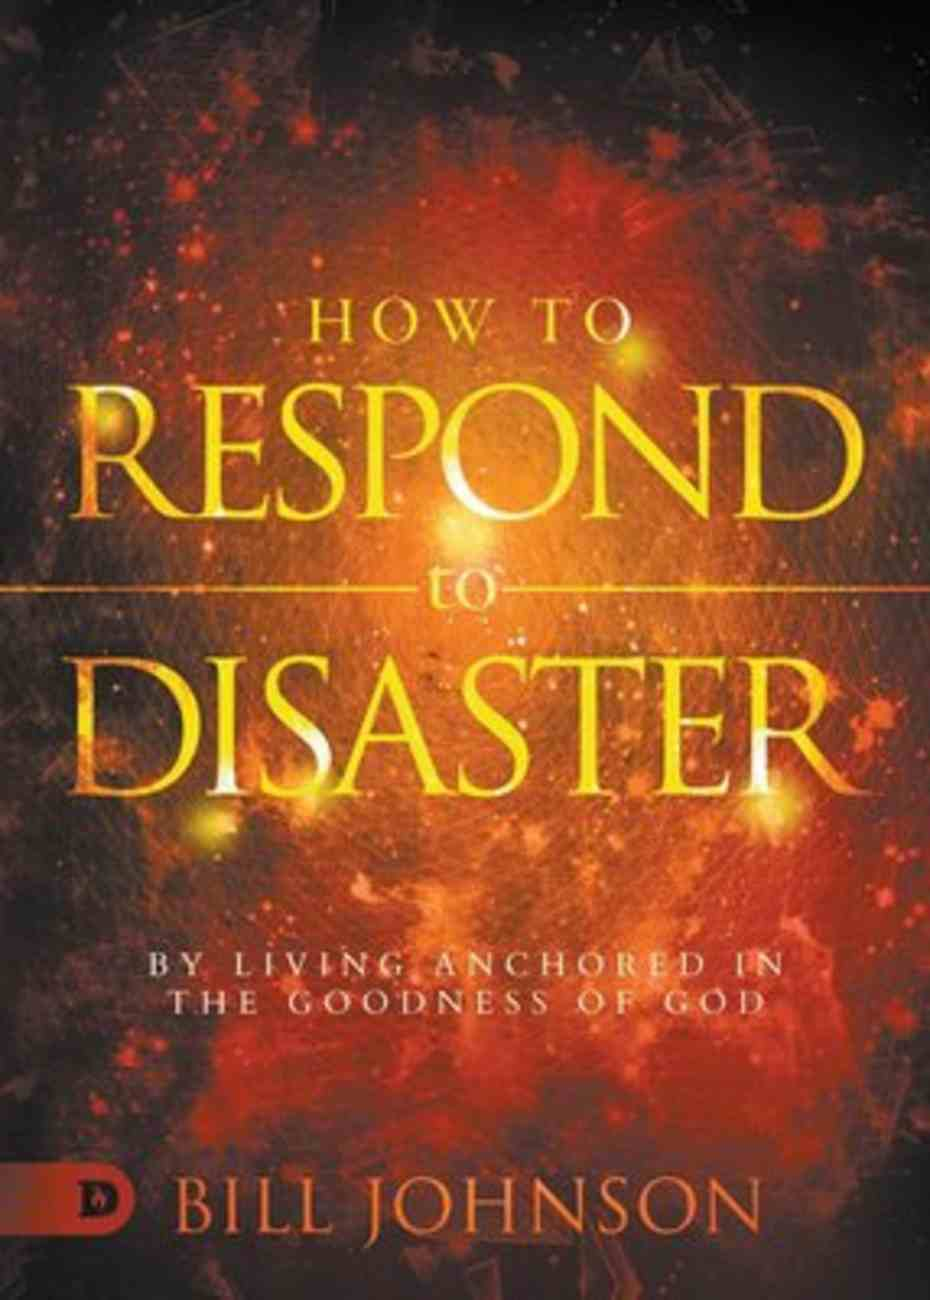 How to Respond to Disaster: By Living Anchored in the Goodness of God Paperback